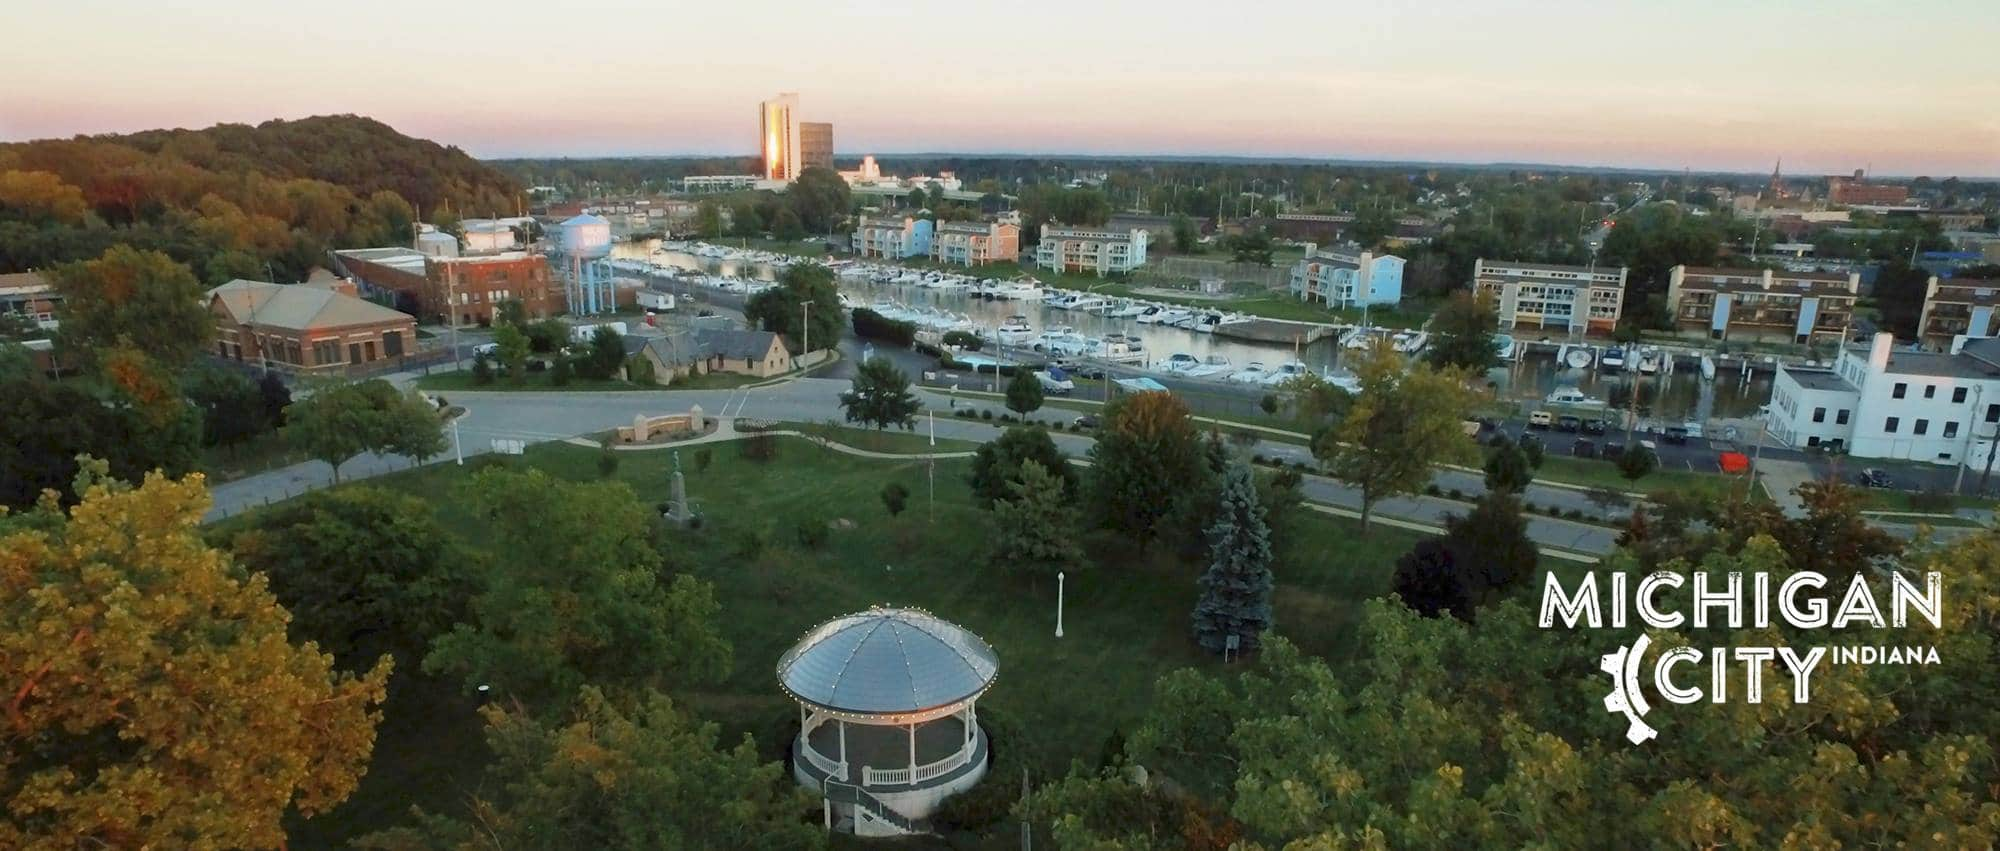 City of Michigan City partners with Indiana University to study greenhouse gas emissions